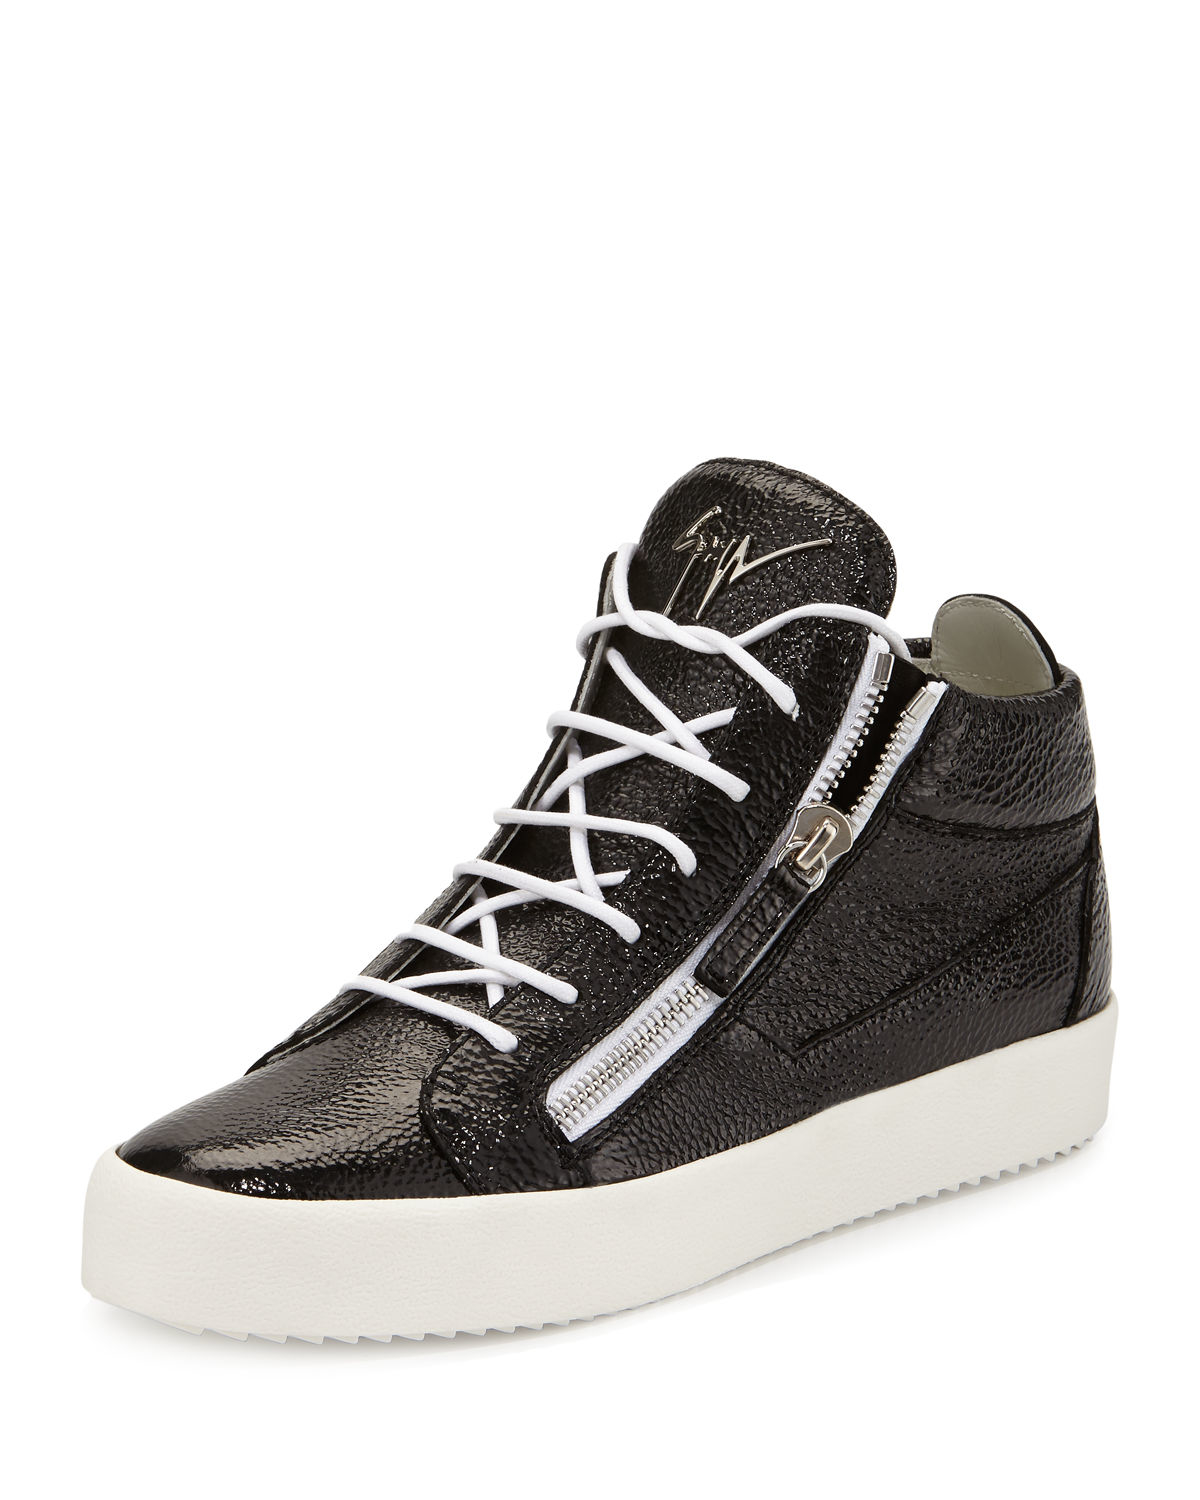 giuseppe zanotti s leather mid top sneaker in black lyst